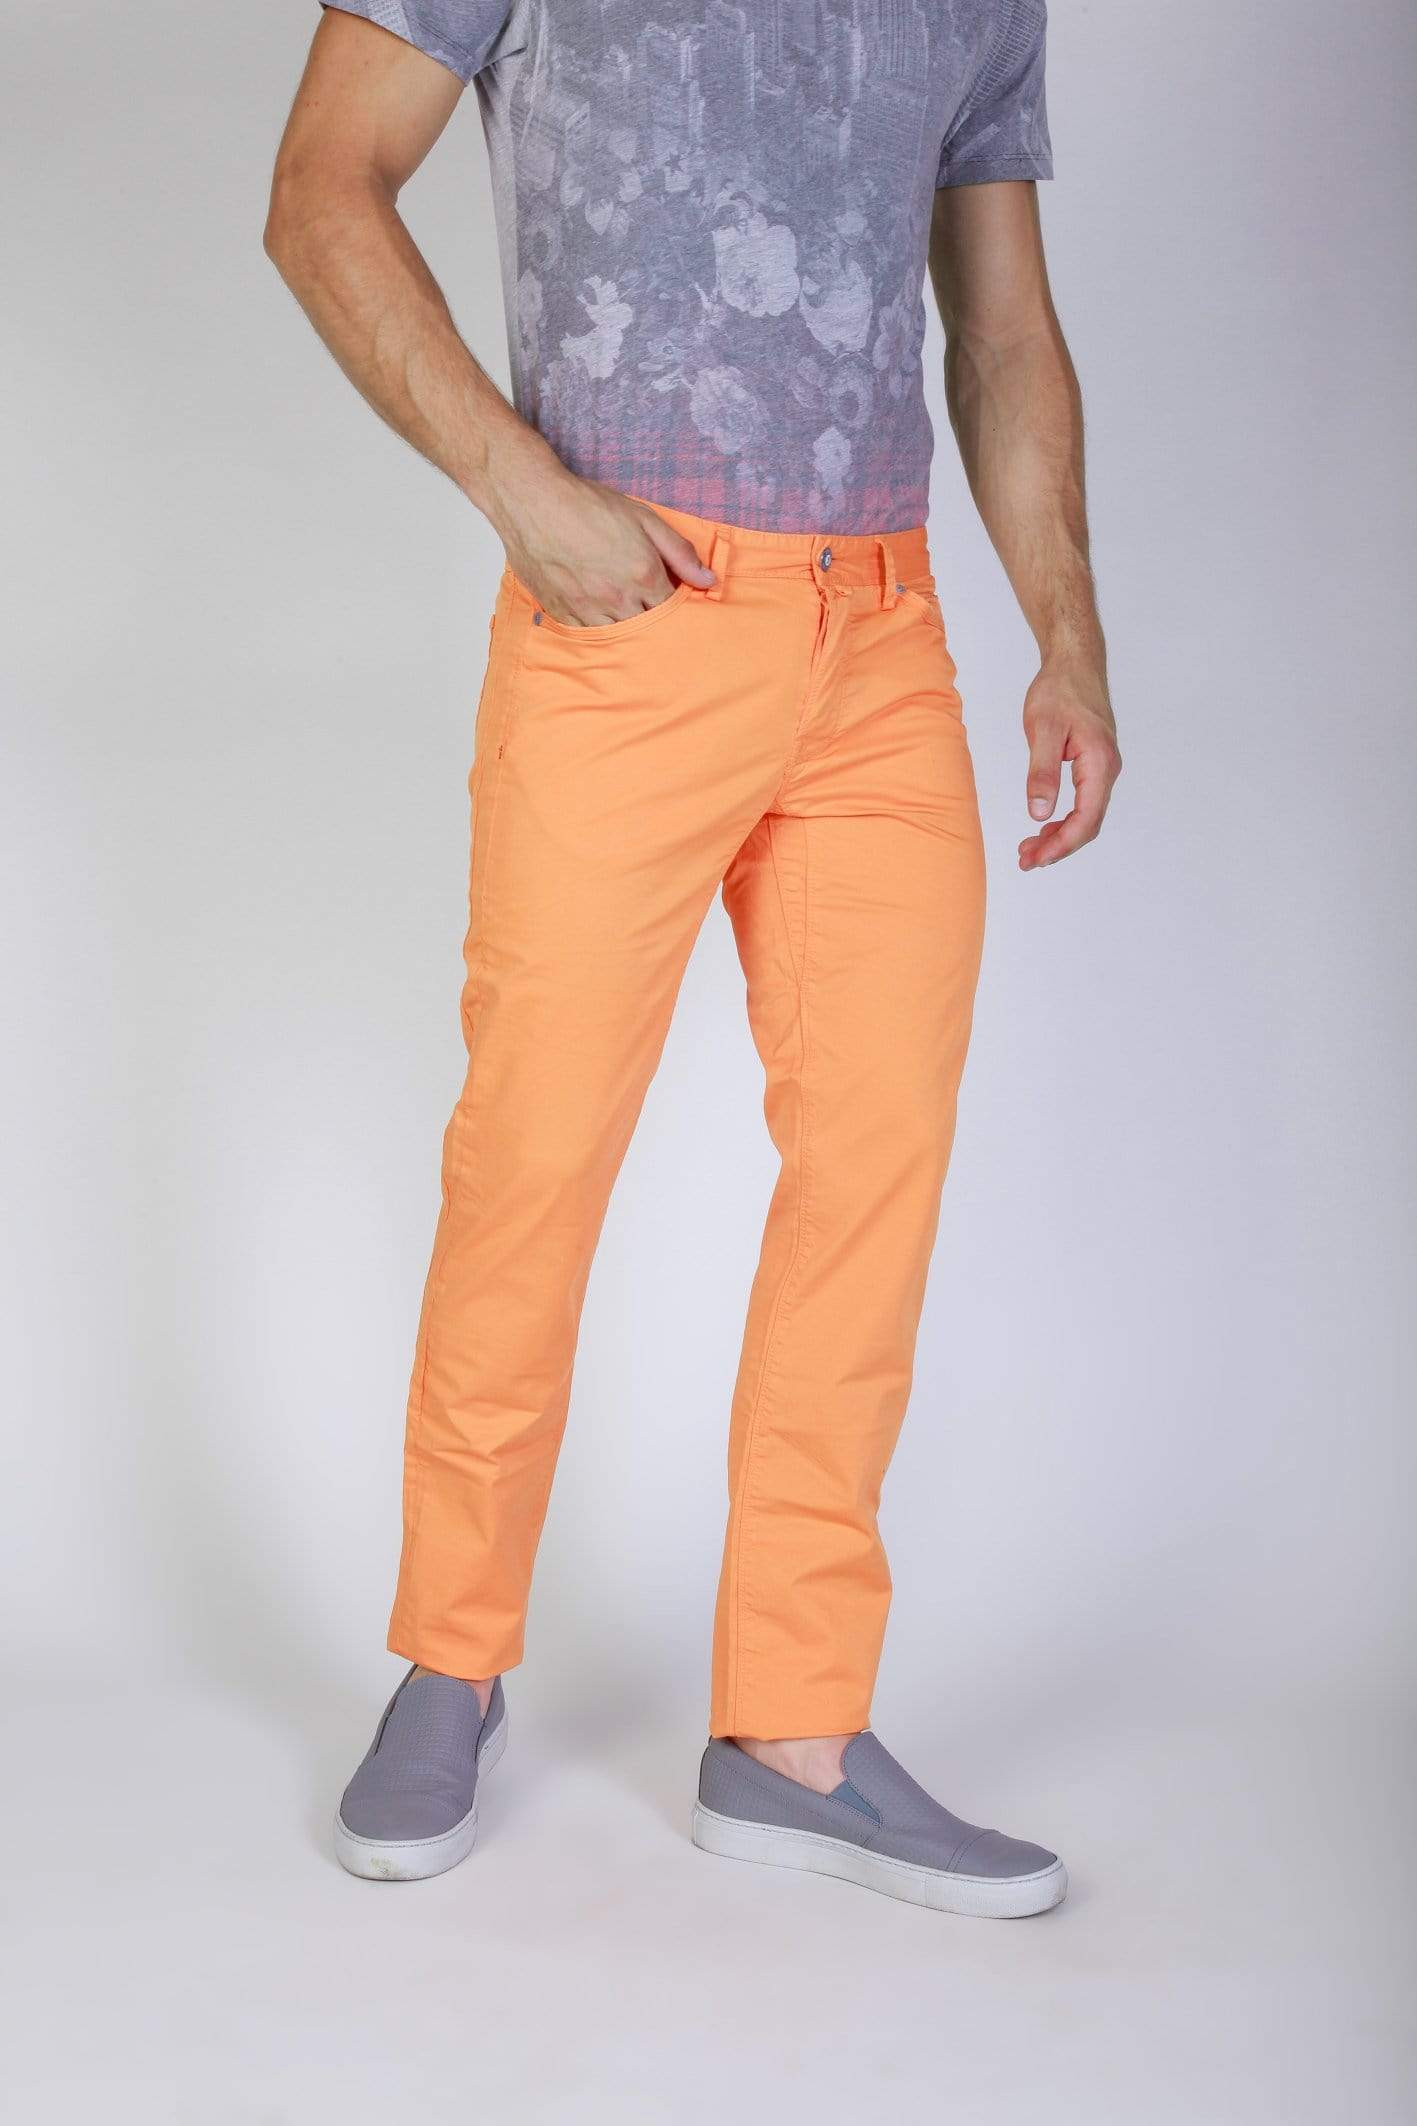 Jaggy Clothing Trousers orange / 29 Jaggy - J1883T812-Q1